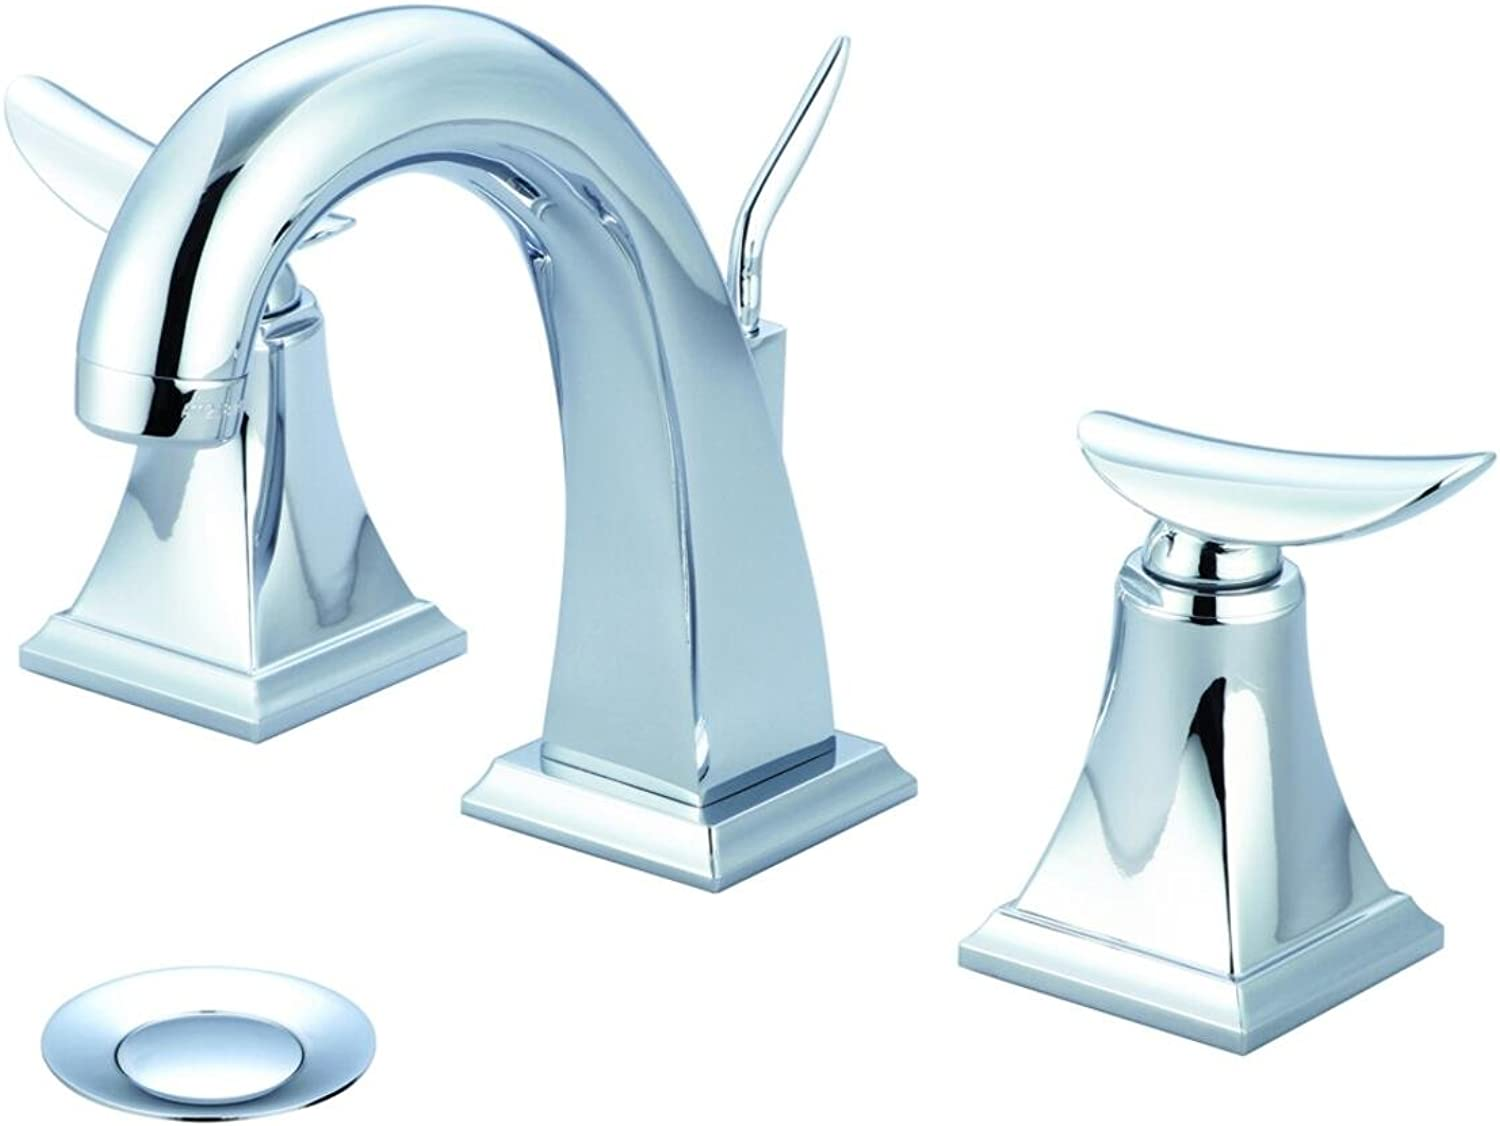 Pioneer Prenza Series 3PR200-E1.5 Two Handle Lavatory Widespread Faucet, PVD Polished Chrome